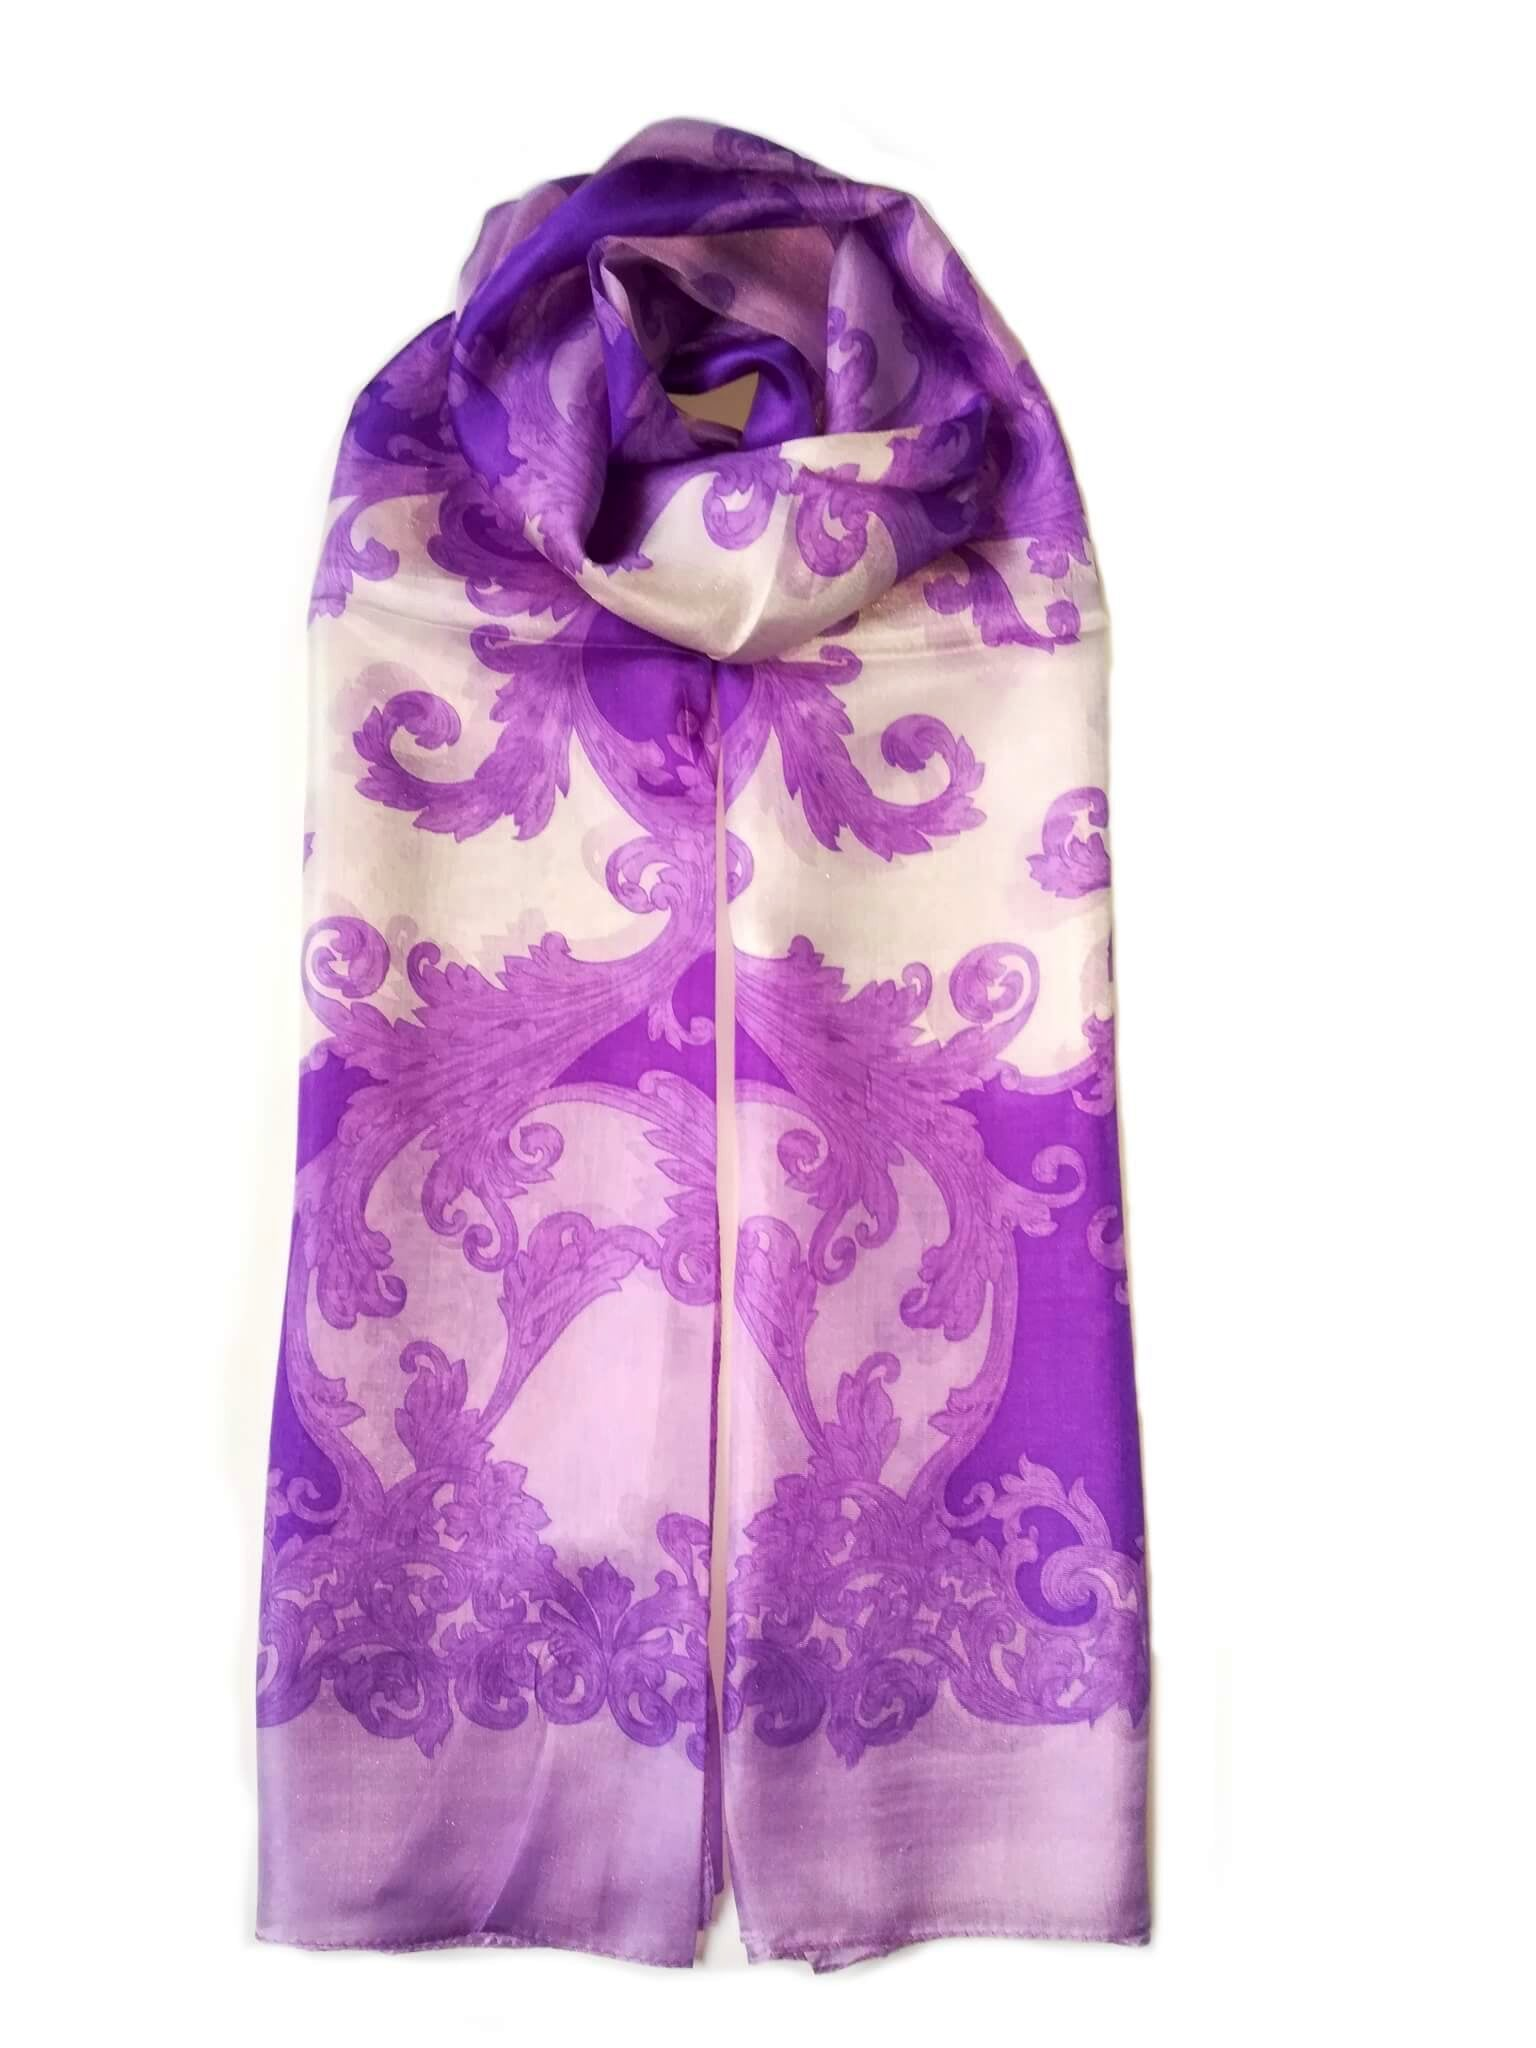 Large Silk Scarf Porcelain Lilac - Vshine Silk and Shine Fashion Accessories